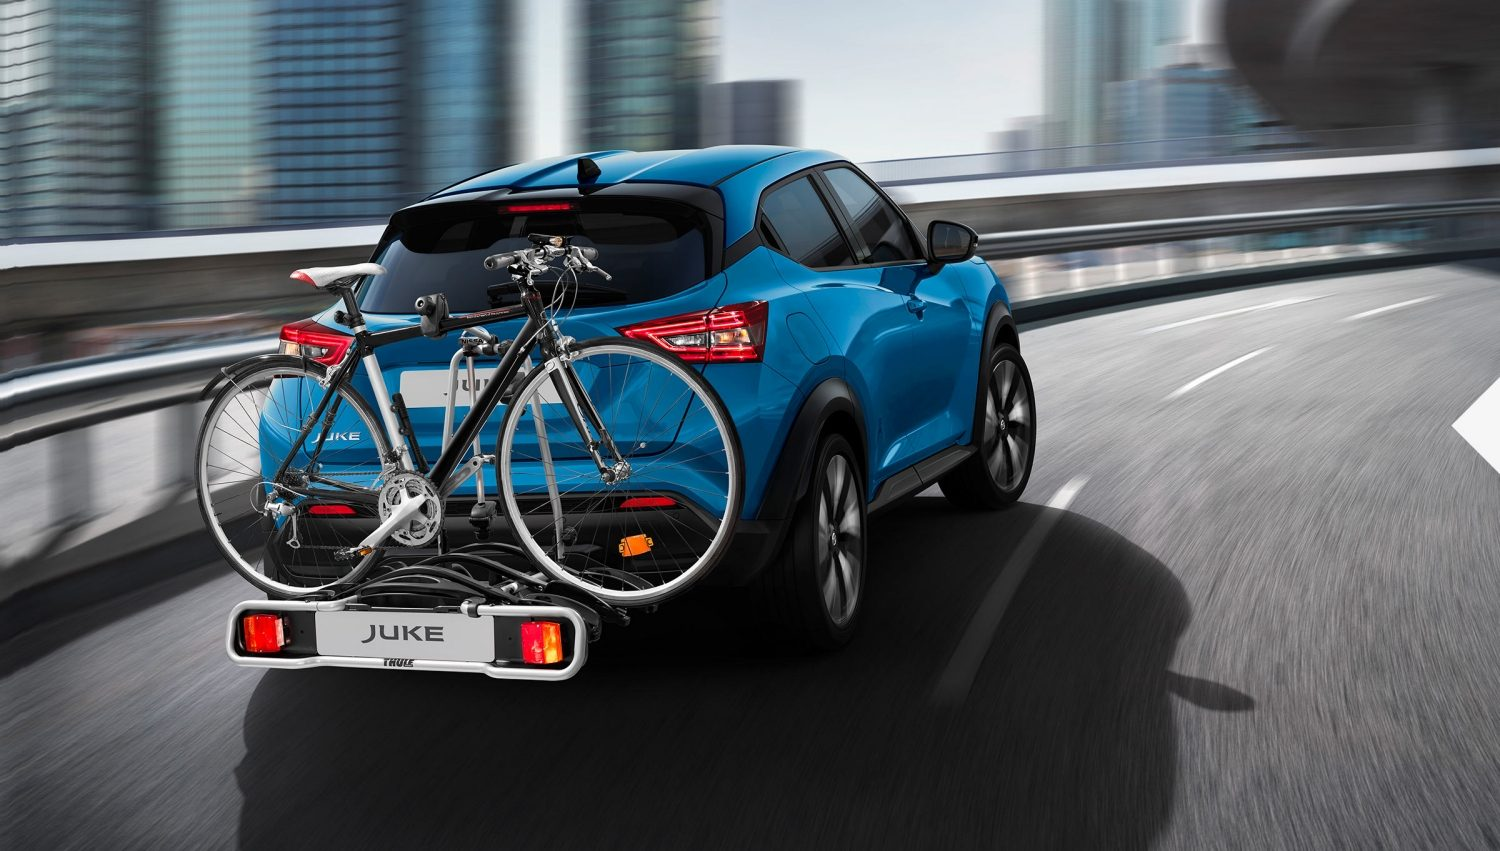 Juke with bike carrier.